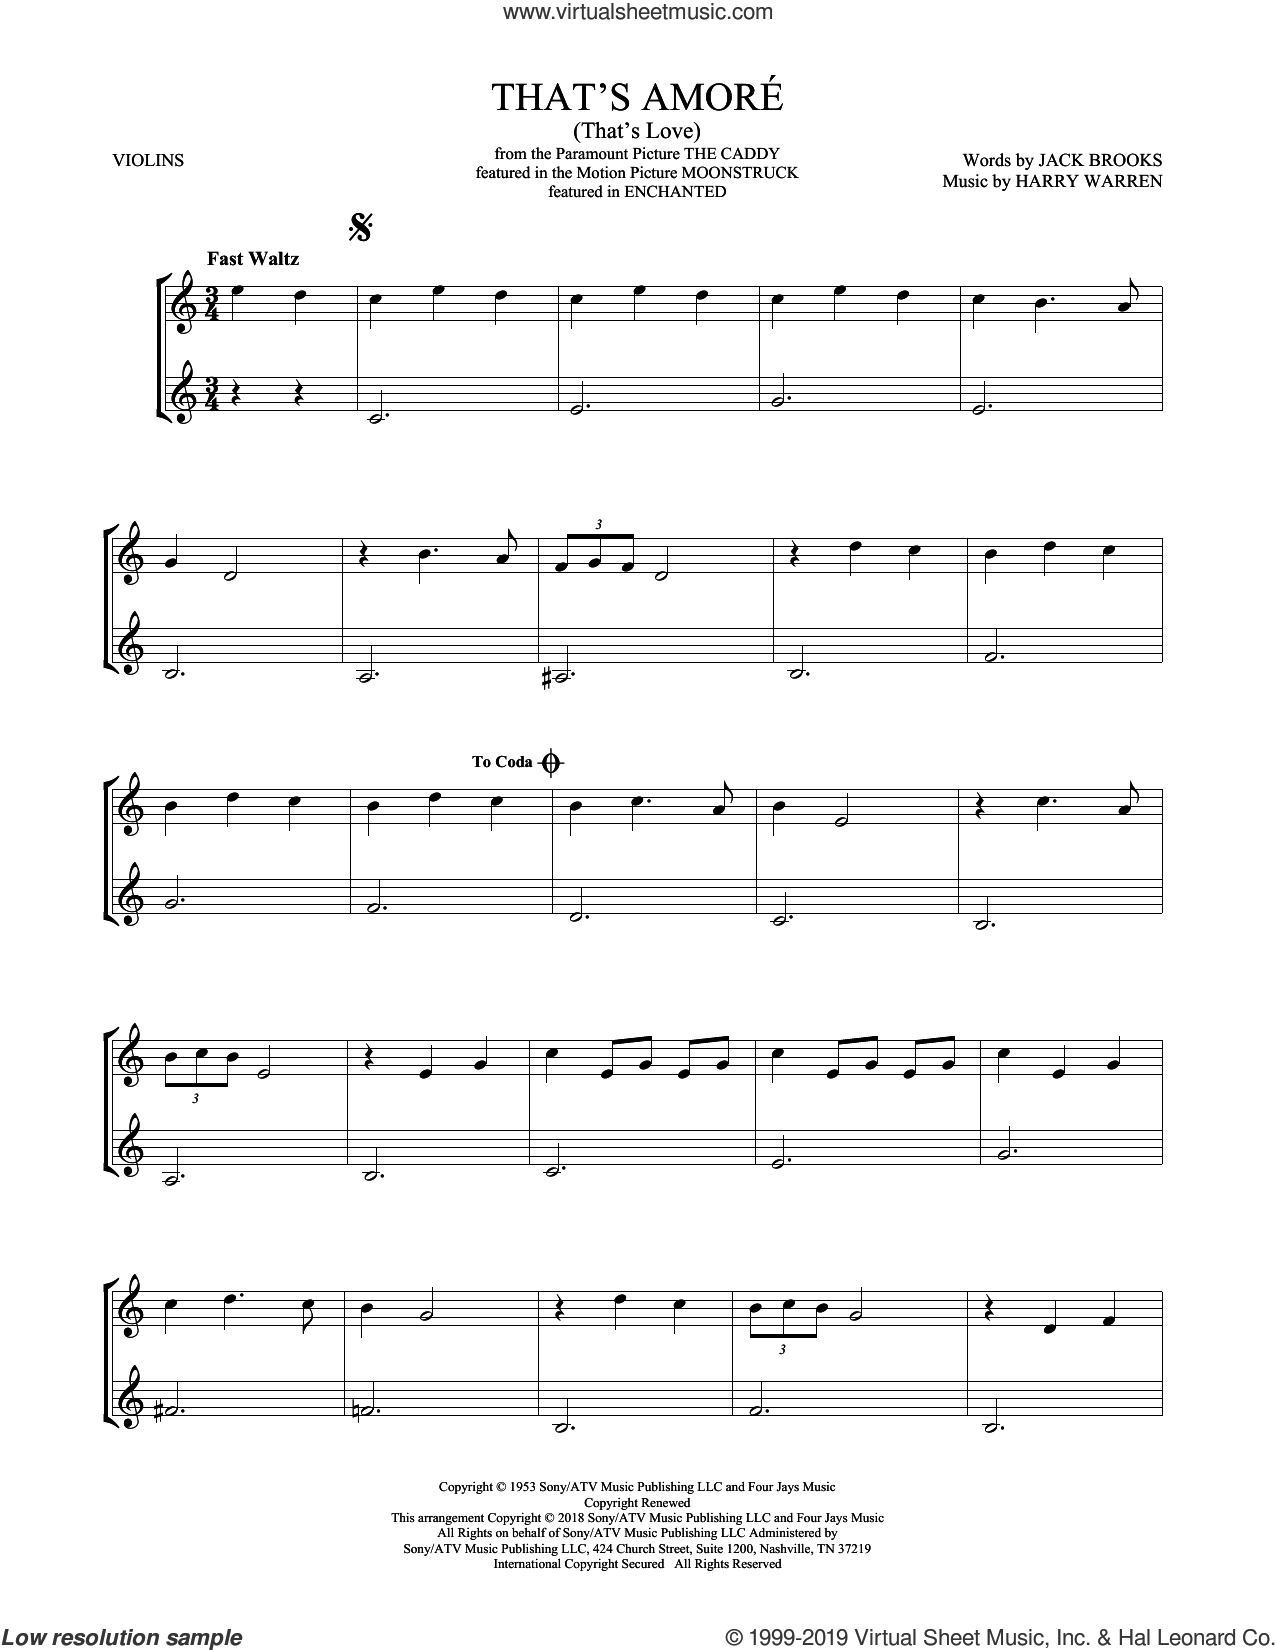 That's Amore (That's Love) sheet music for two violins (duets, violin duets) by Dean Martin, Harry Warren and Jack Brooks, intermediate skill level